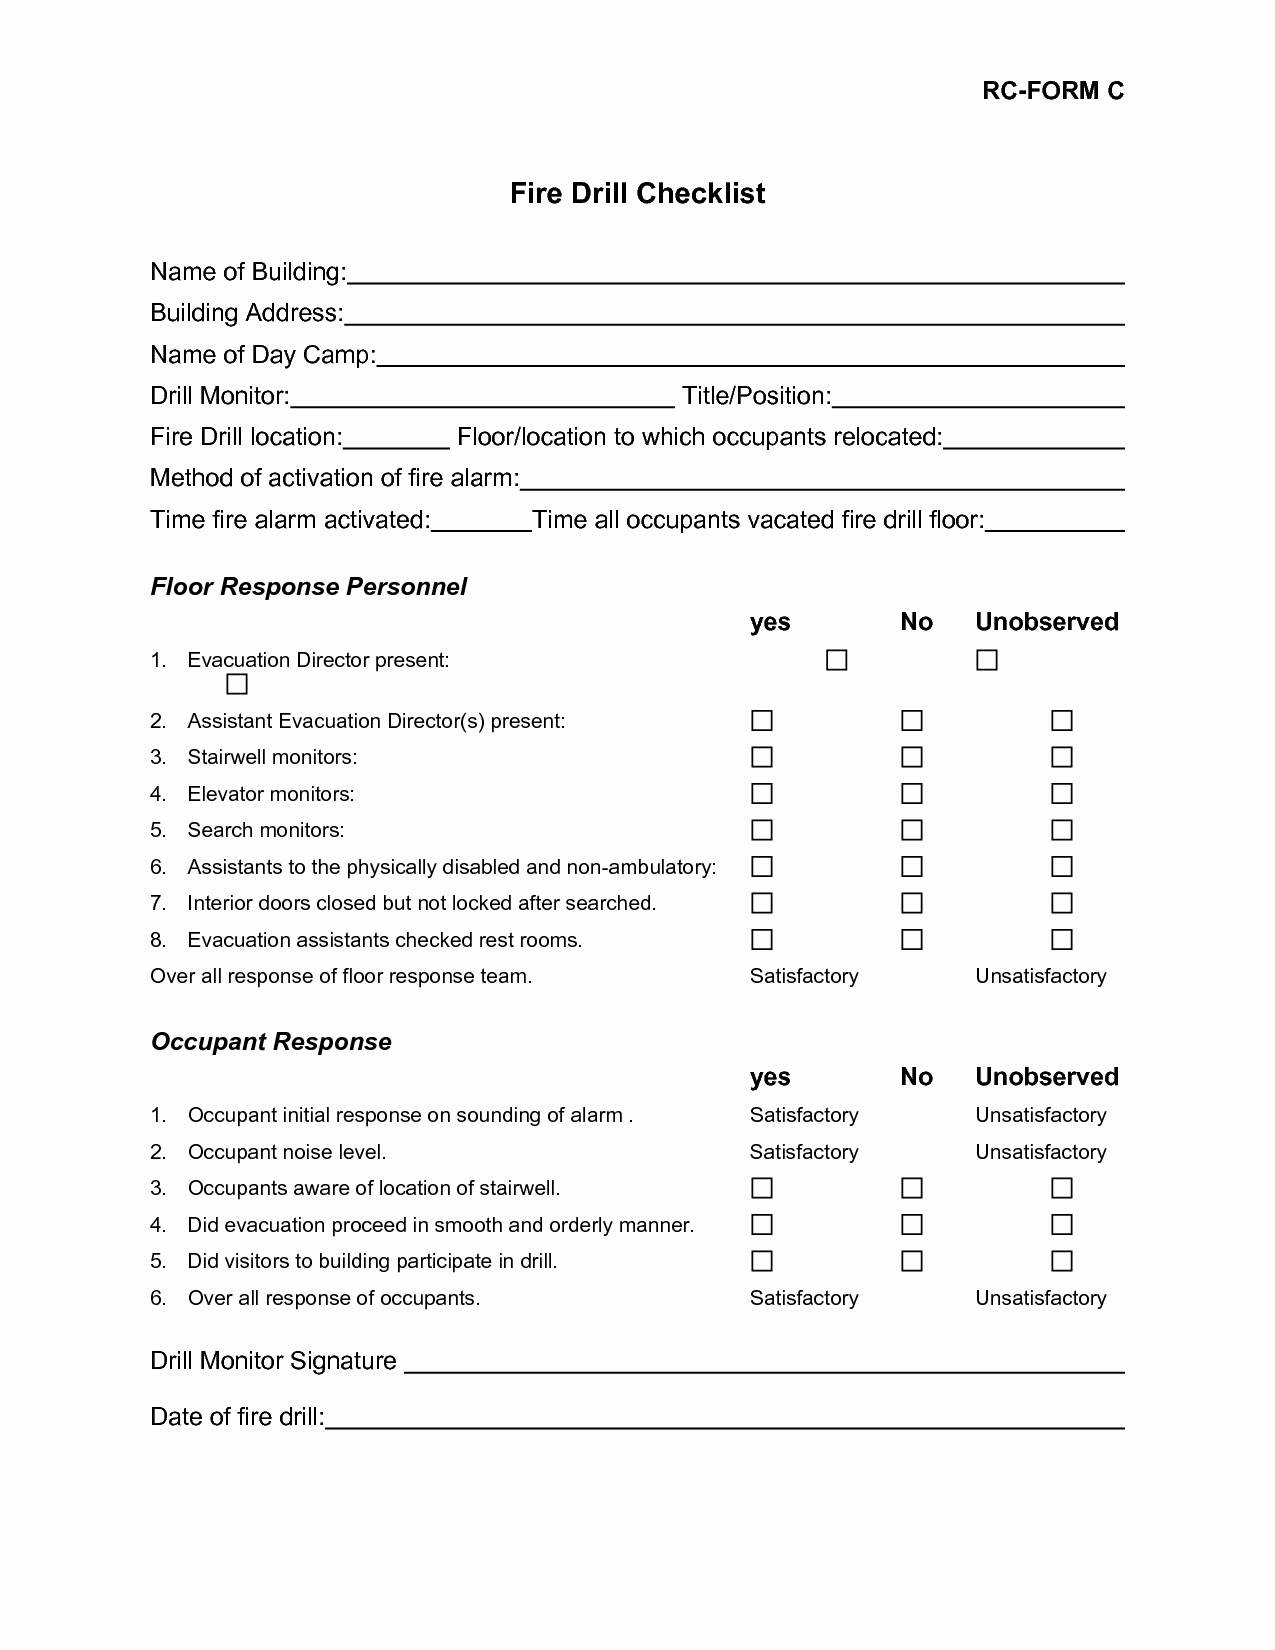 Emergency Room form Template Fresh Best S Of Operating Room Fire Drill Scenarios Fire